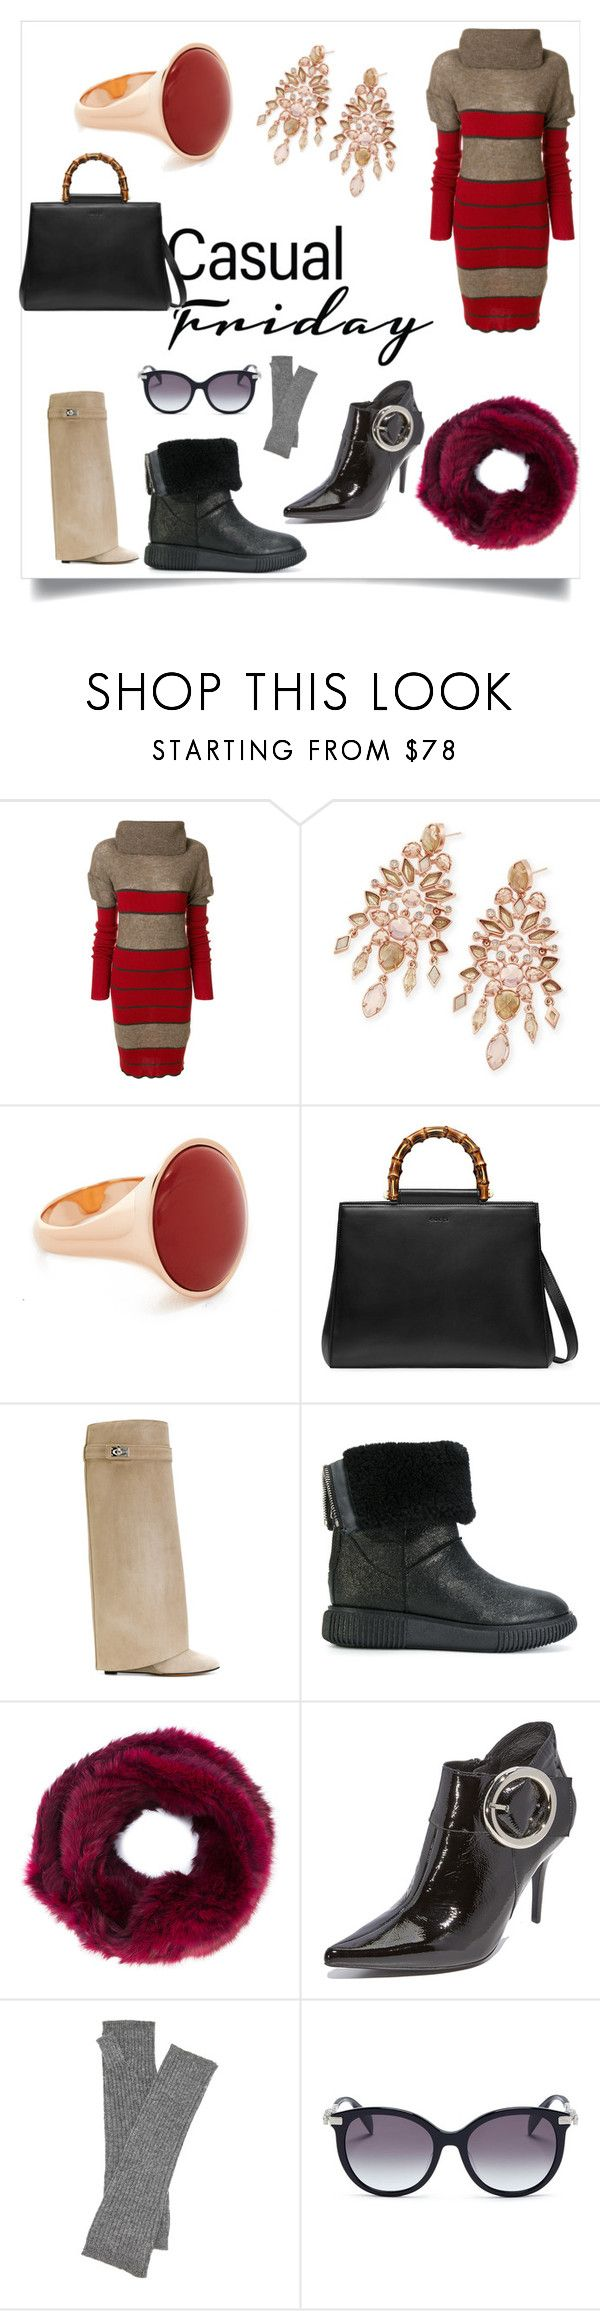 """""""Big sale offer"""" by kristeen9 on Polyvore featuring Vivienne Westwood, Kendra Scott, Vita Fede, Gucci, Givenchy, Moncler, Jocelyn, Jeffrey Campbell, Hat Attack and Alexander McQueen"""